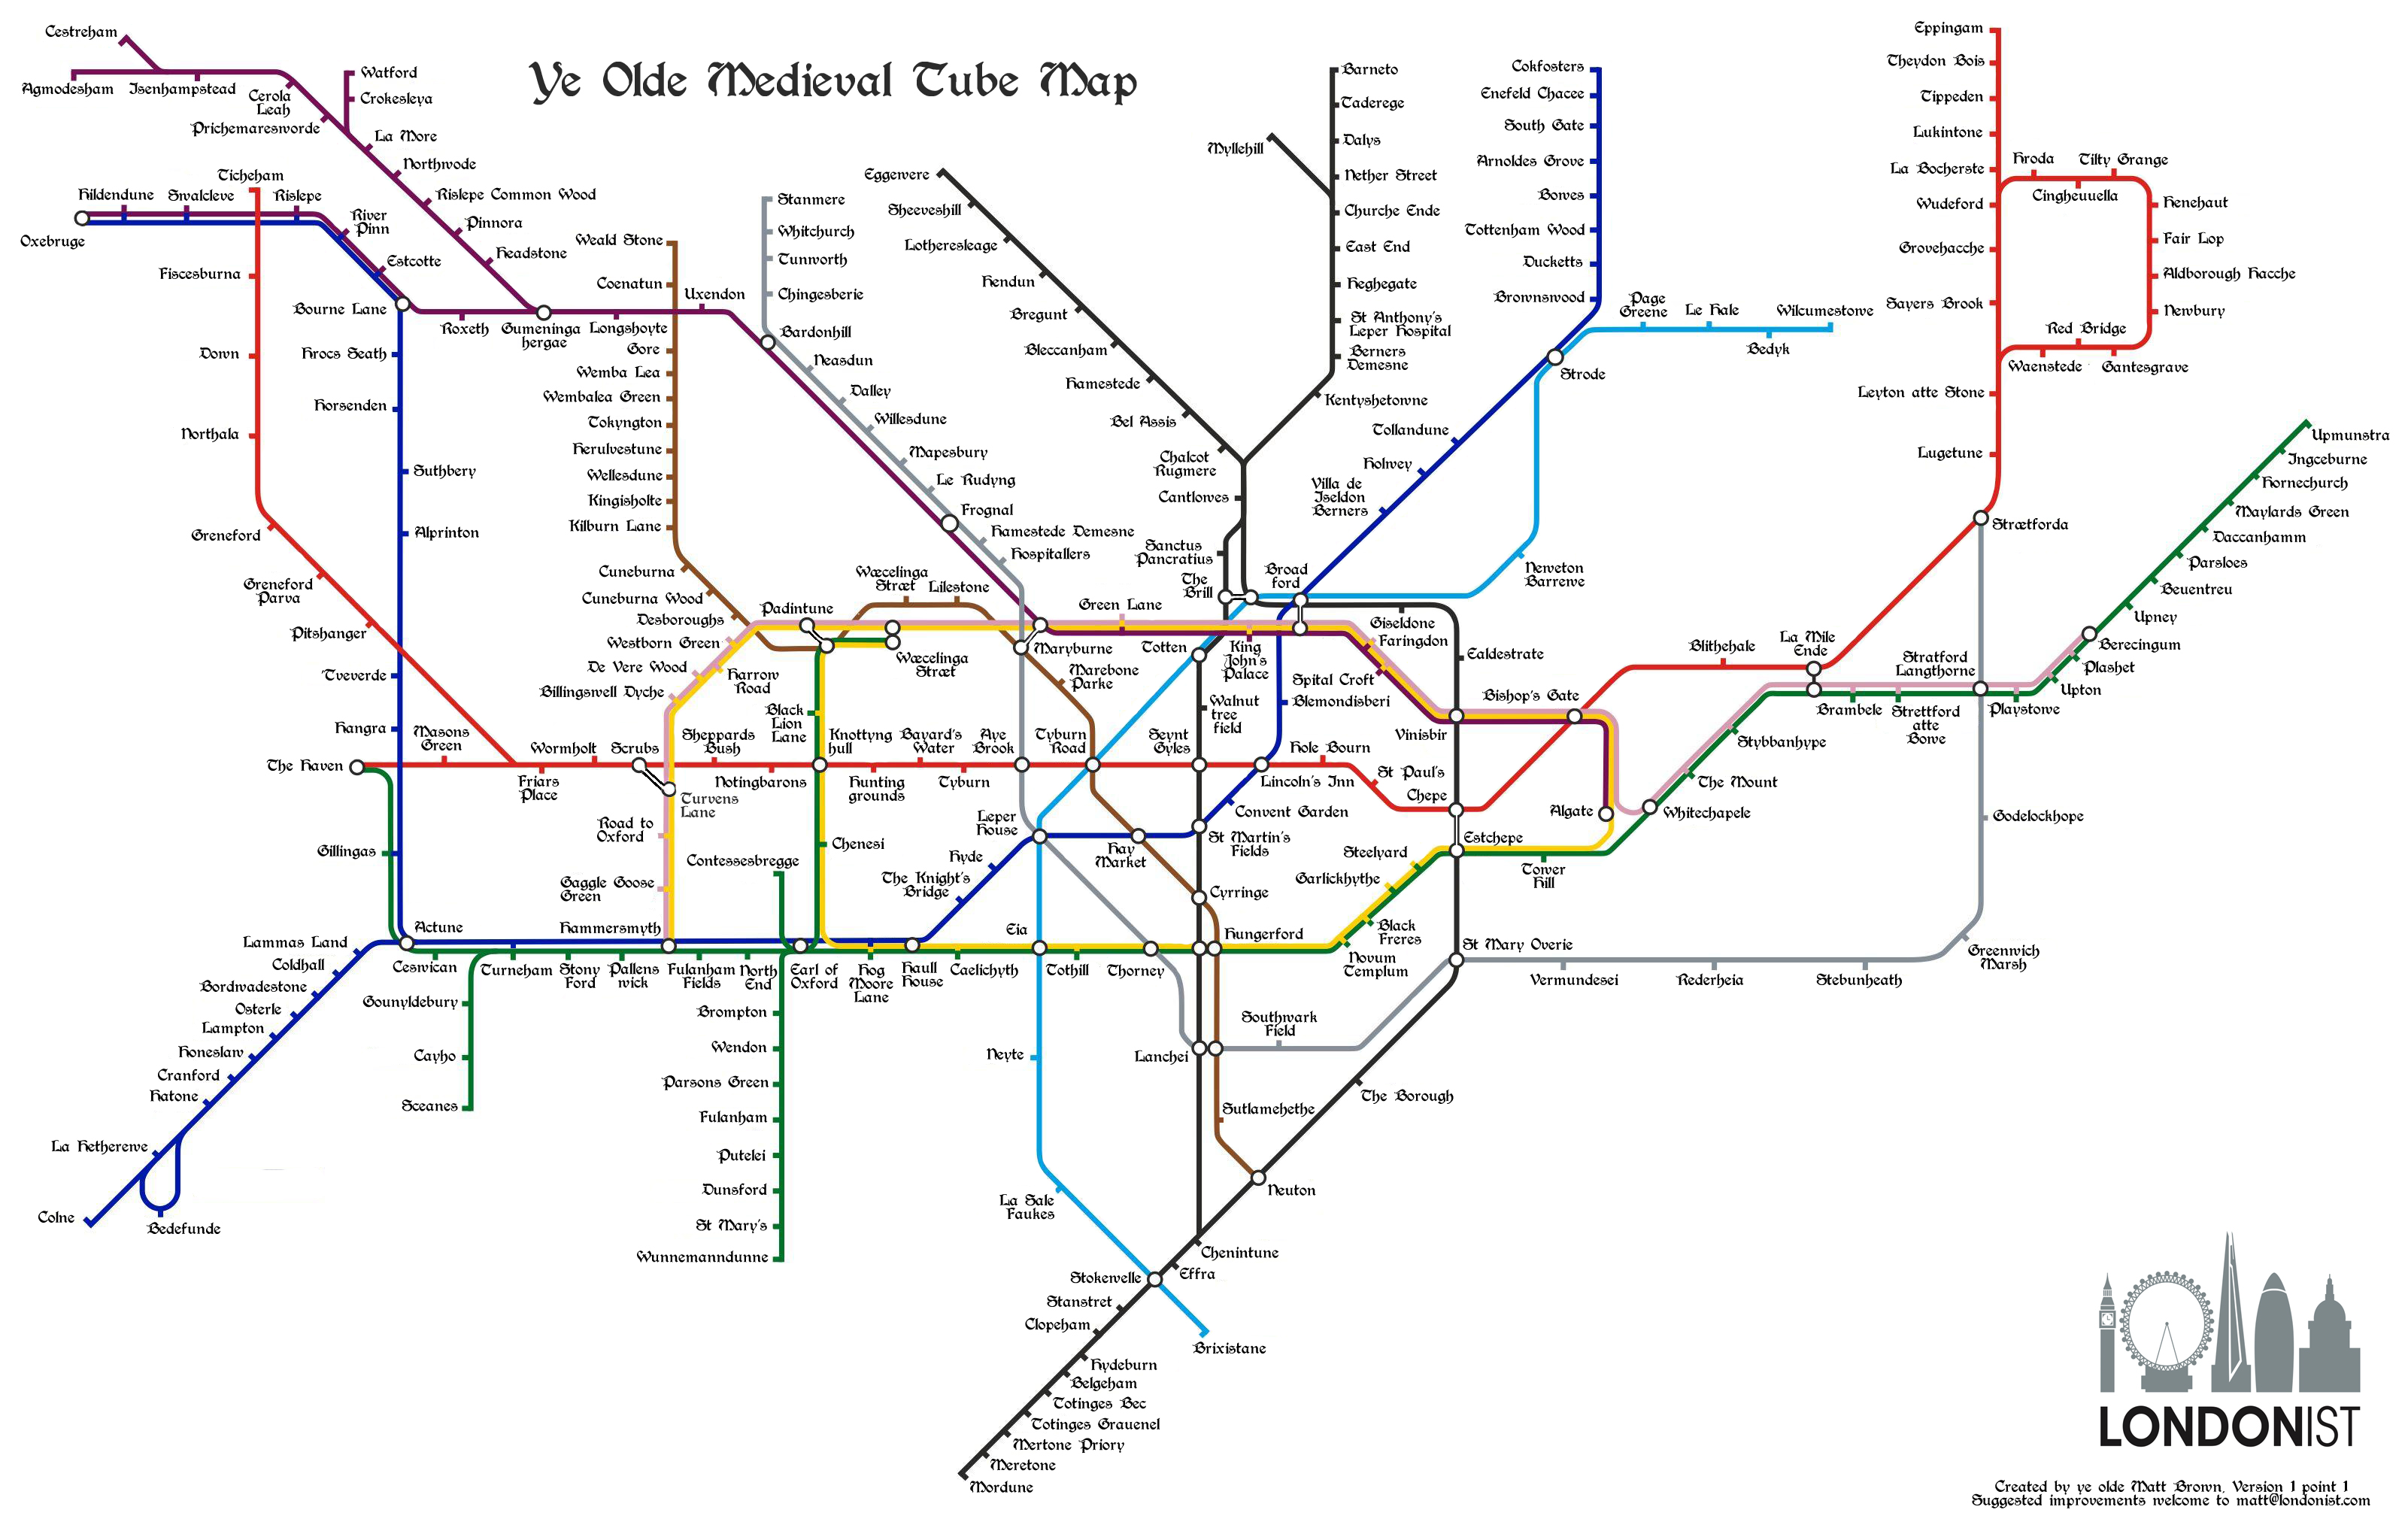 This Charming Medieval Tube Map Shows Stations With The Names Of Big  Voucher Click Here